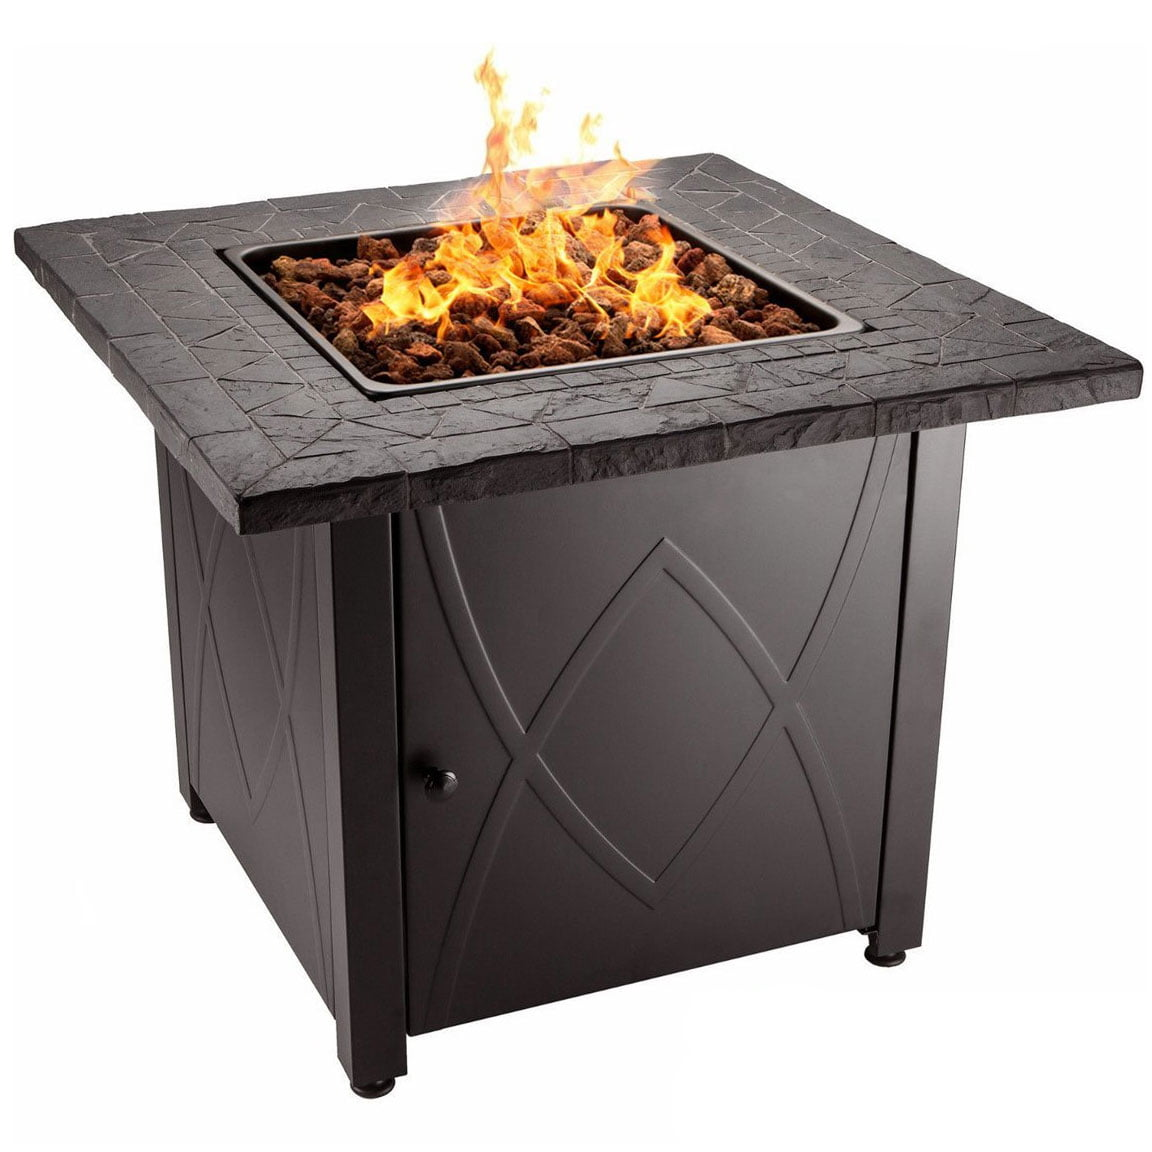 Blue Rhino Endless Summer Outdoor Propane Gas Lava Rock Patio Firepit, Brown by Endless Summer